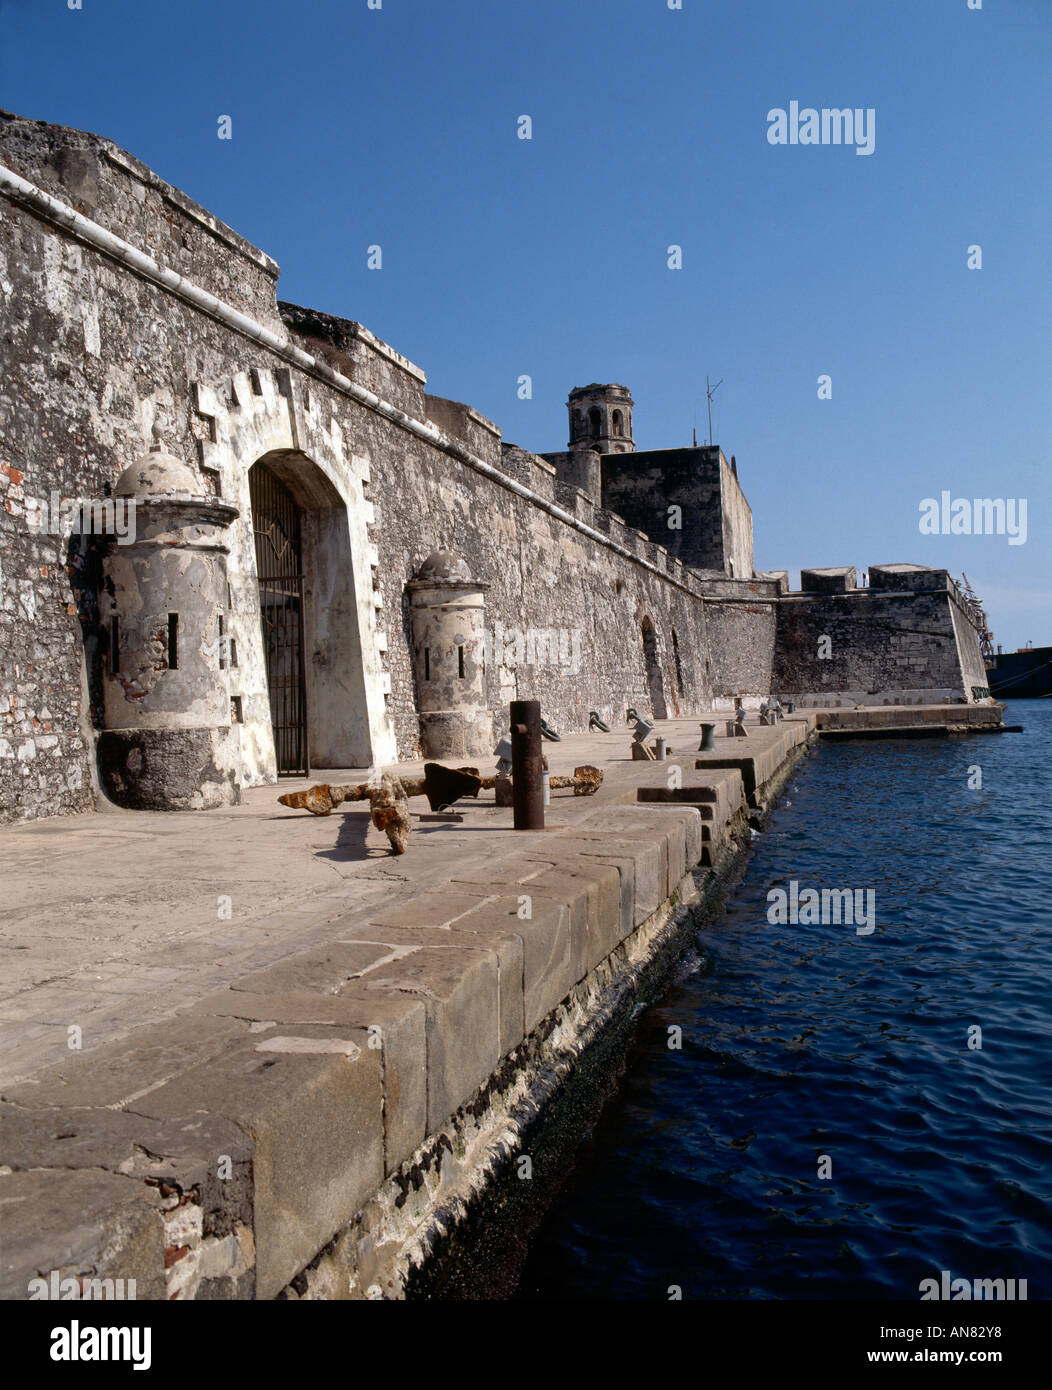 Looking along the fortified walls of the fortress of San Juan de Ulua Veracruz rebuilt and strengthened in 1746 Stock Photo